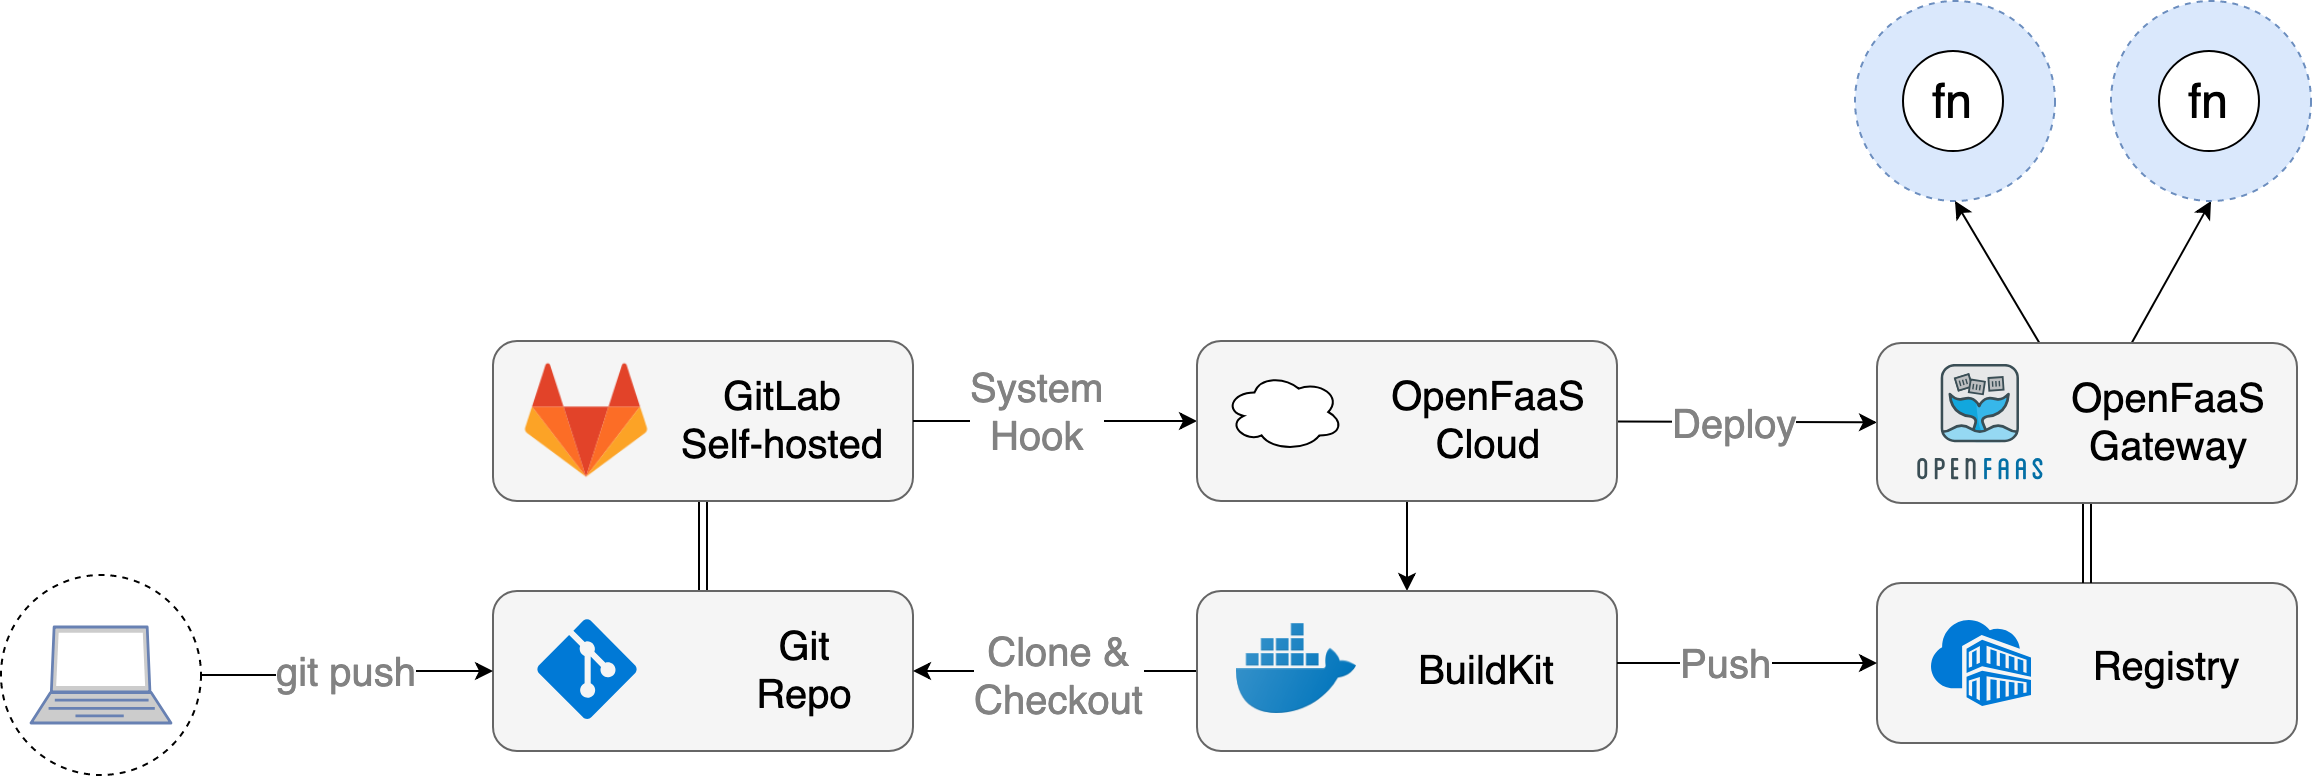 Introducing OpenFaaS Cloud with GitLab | OpenFaaS